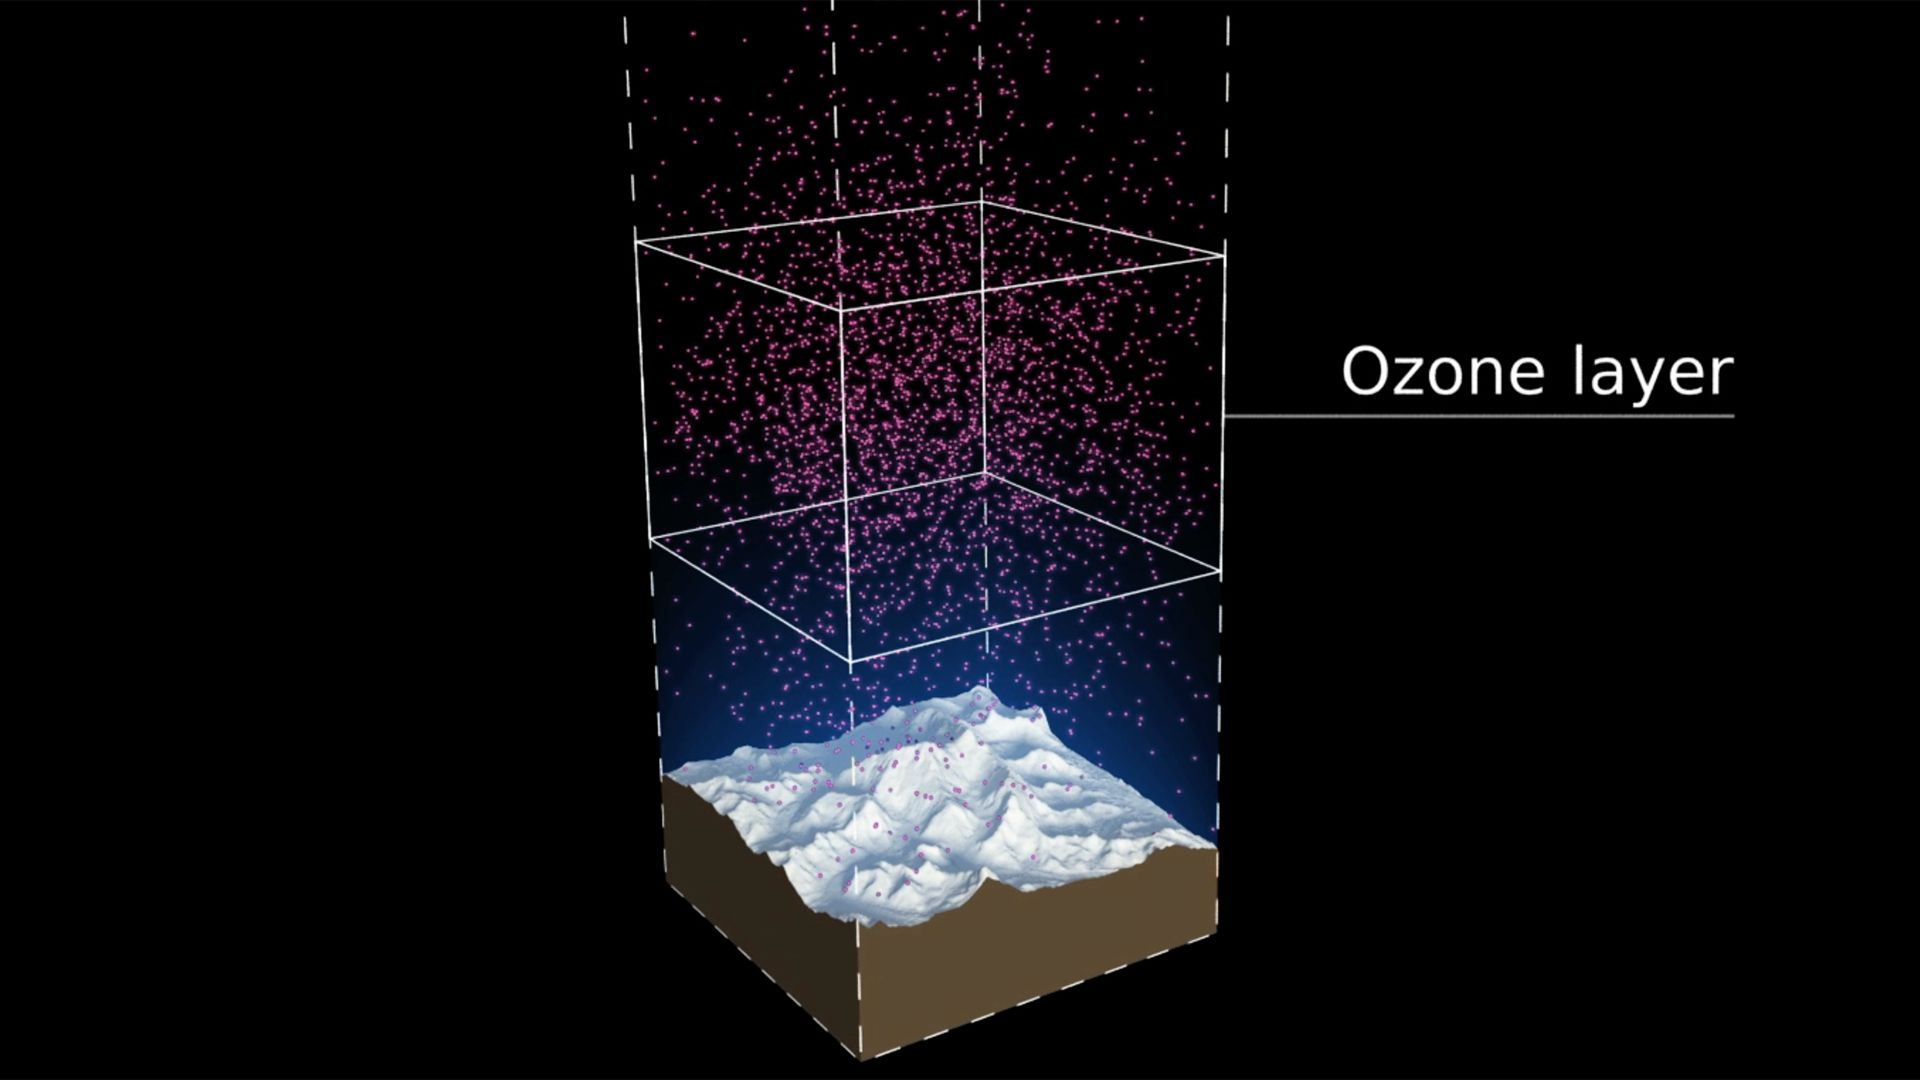 Image from 'Precious Ozone' film - the distribution of ozone in the atmosphere. Each pink spot in this 20 km x 20 km column of air represents 10 billion billion billion ozone molecules.